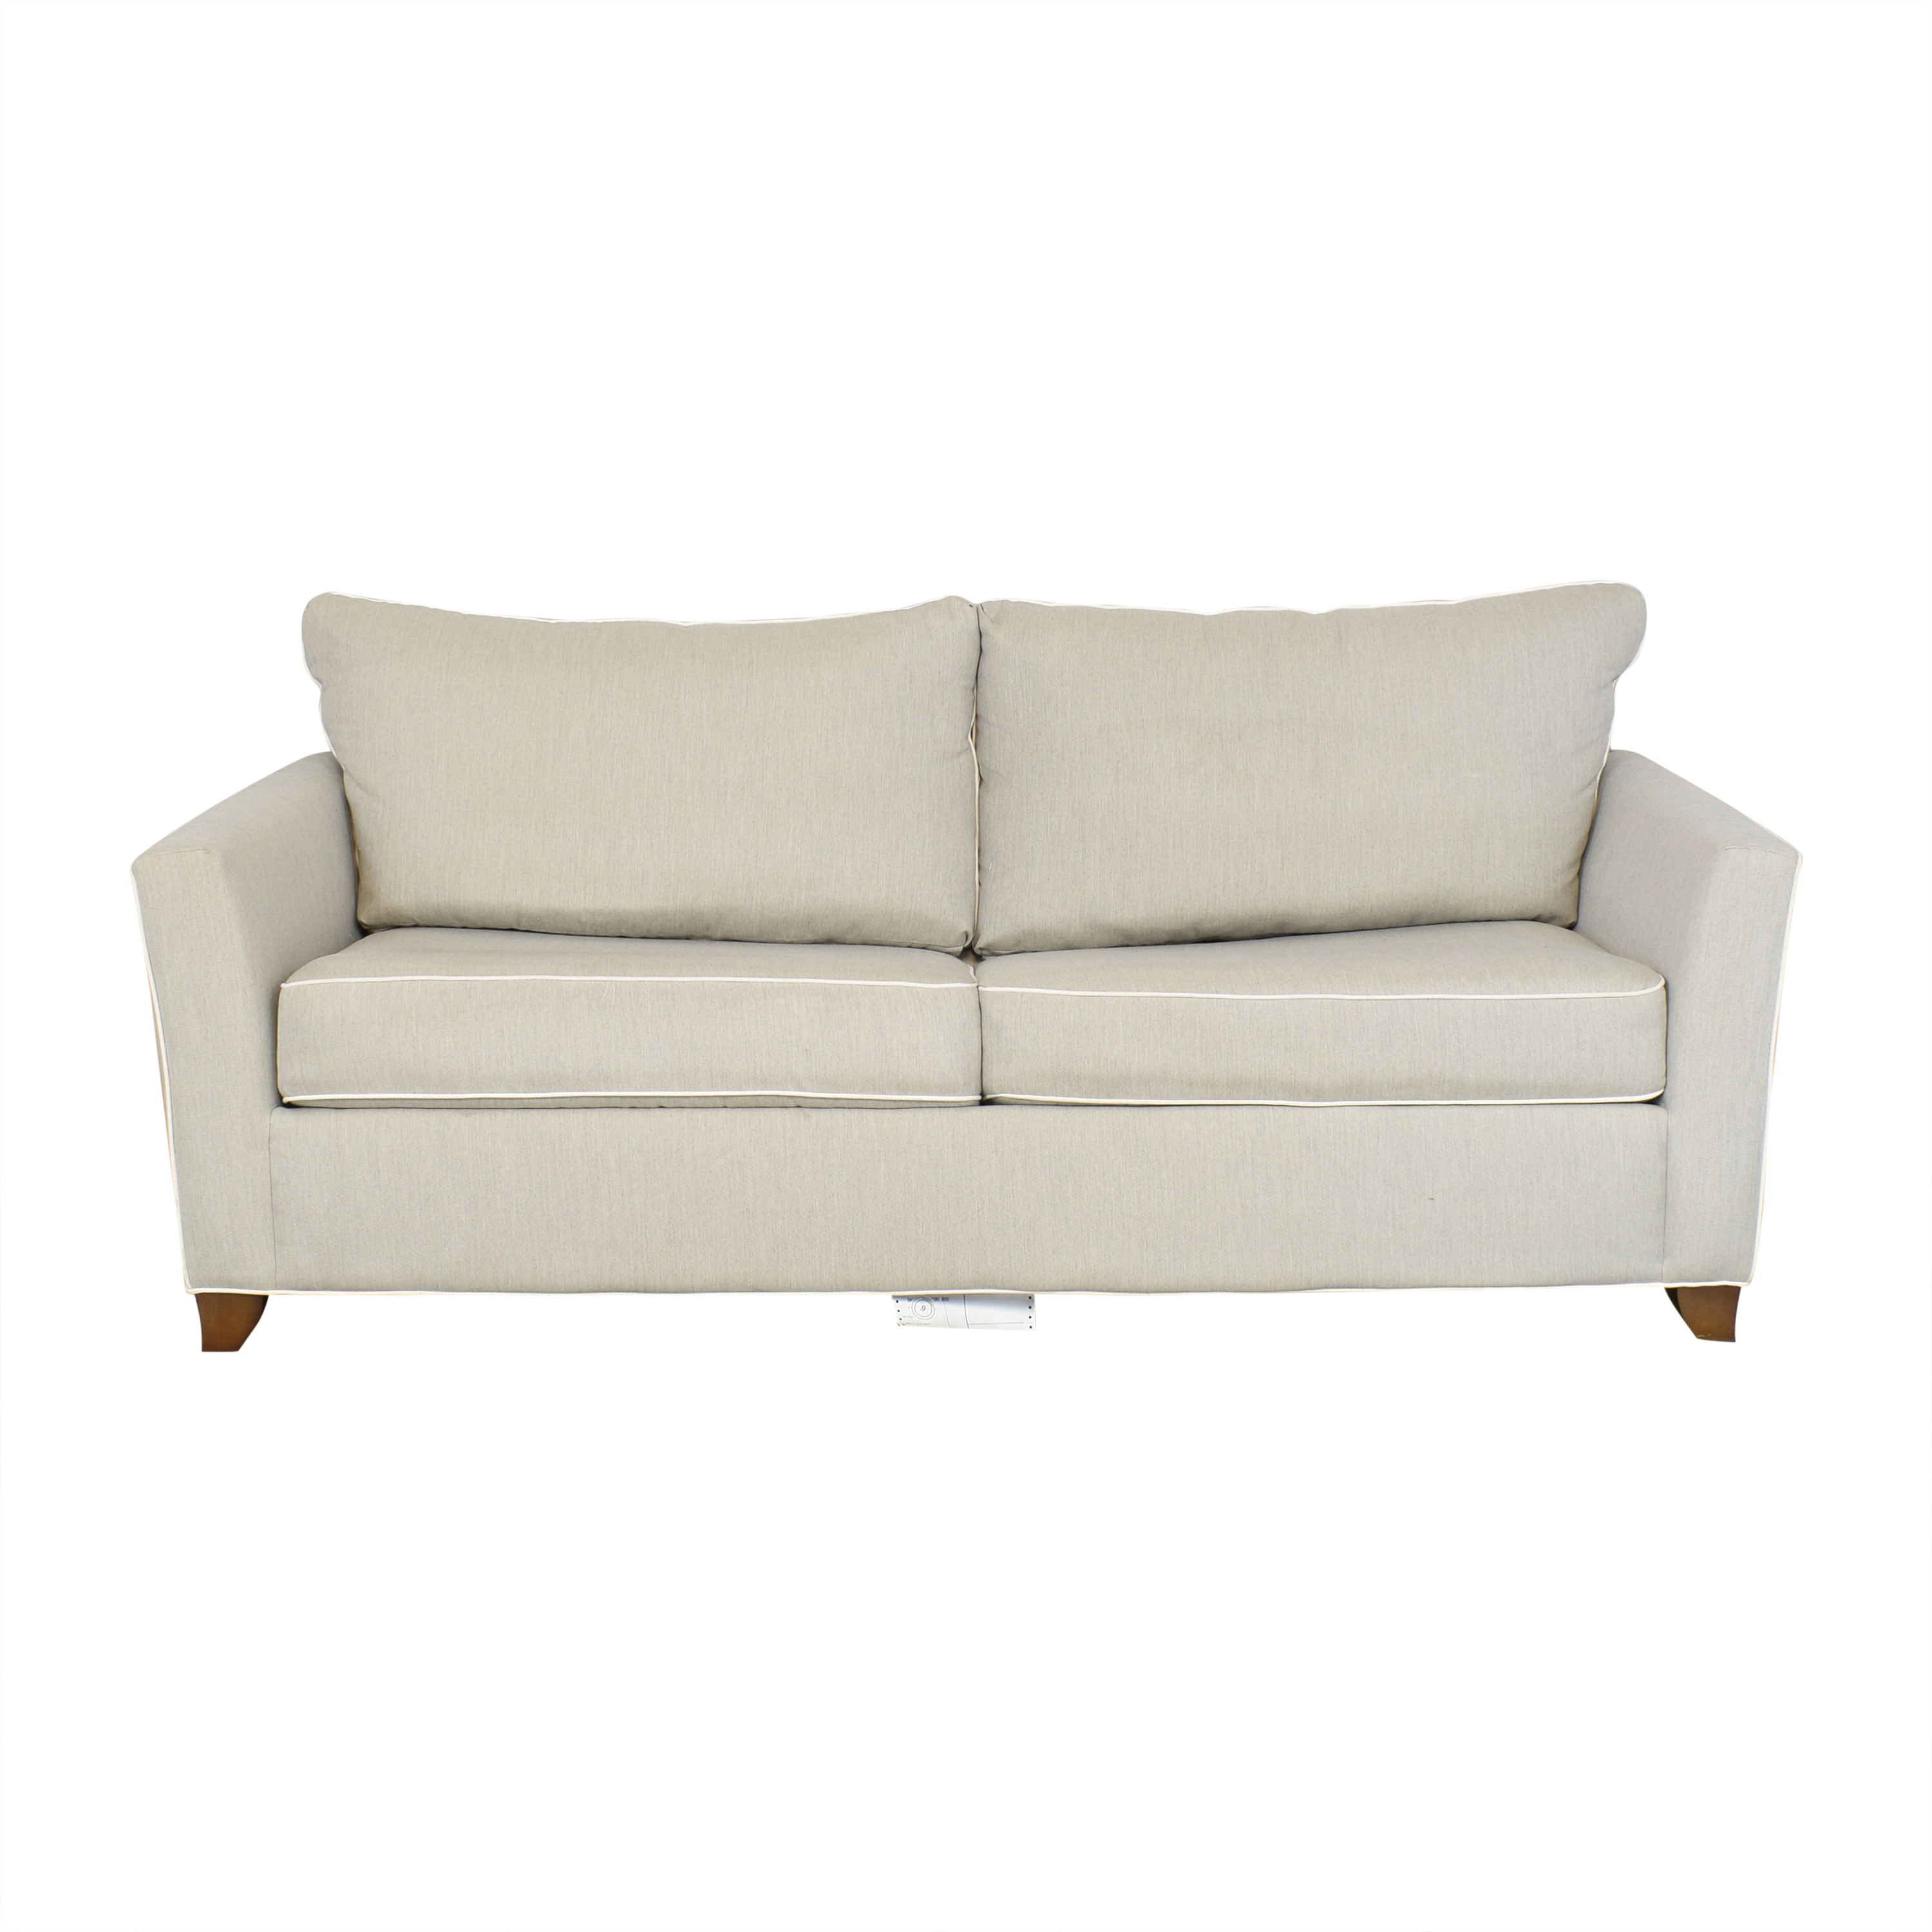 buy Raymour & Flanigan Two Cushion Sleeper Sofa Raymour & Flanigan Sofa Beds